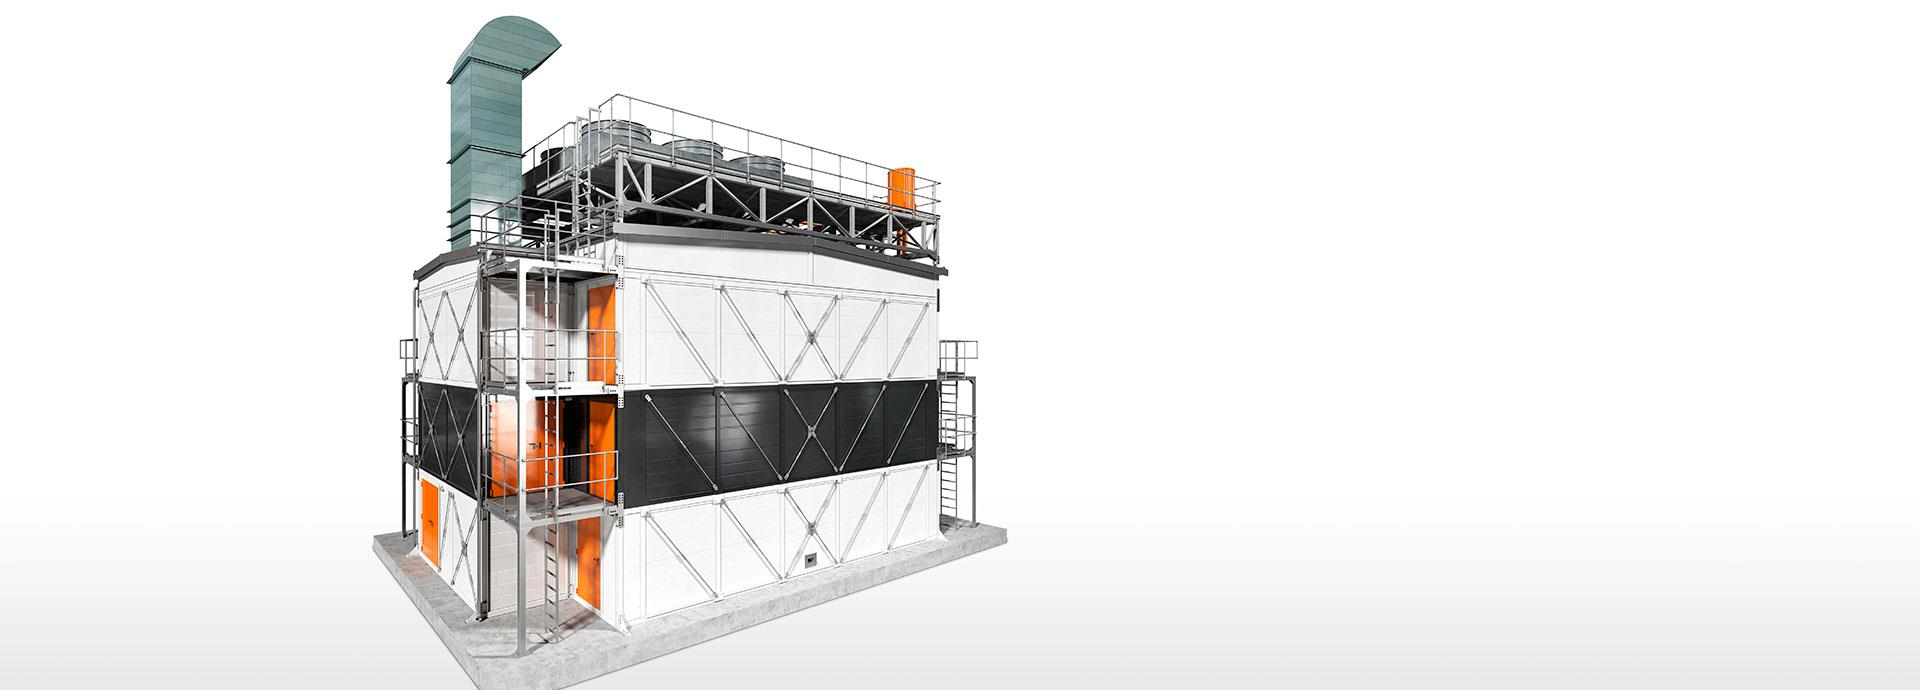 New kid on the energy block – Our experts share why the efficiency and modularity matter